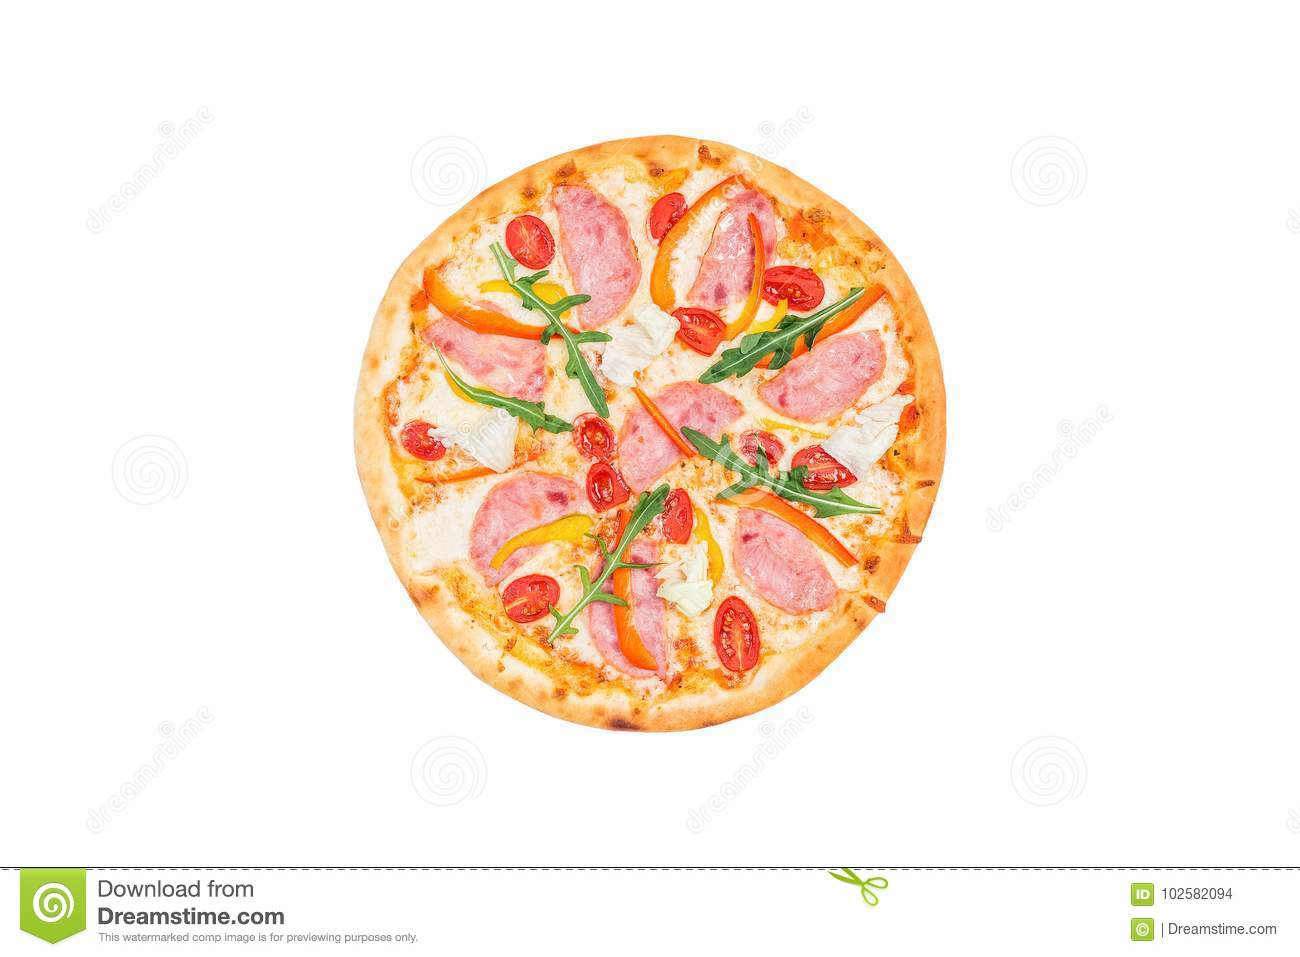 Delicious pizza with ham, sweet pepper, rucola, tomatoes and iceberg lettuce isolated on a white background. Top view